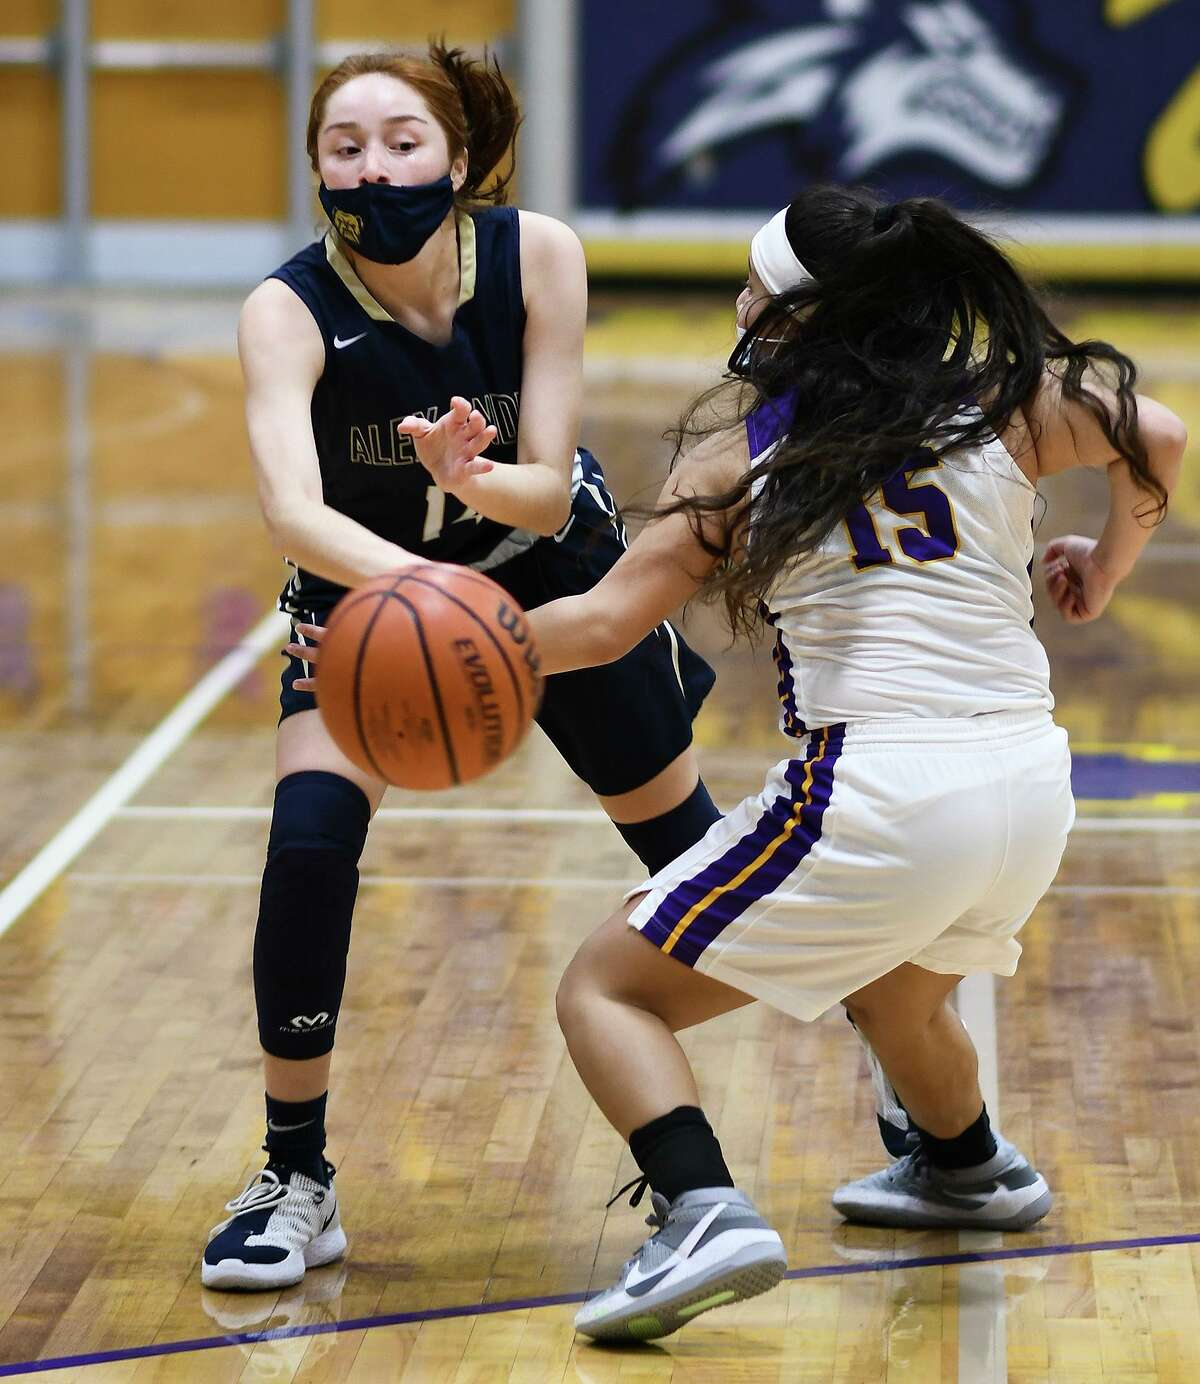 Alexia Barrera and Alexander won 80-34 Tuesday at LBJ to snap a two-game losing streak. The Lady Bulldogs improved to 2-2 in District 30-6A and 11-3 overall.